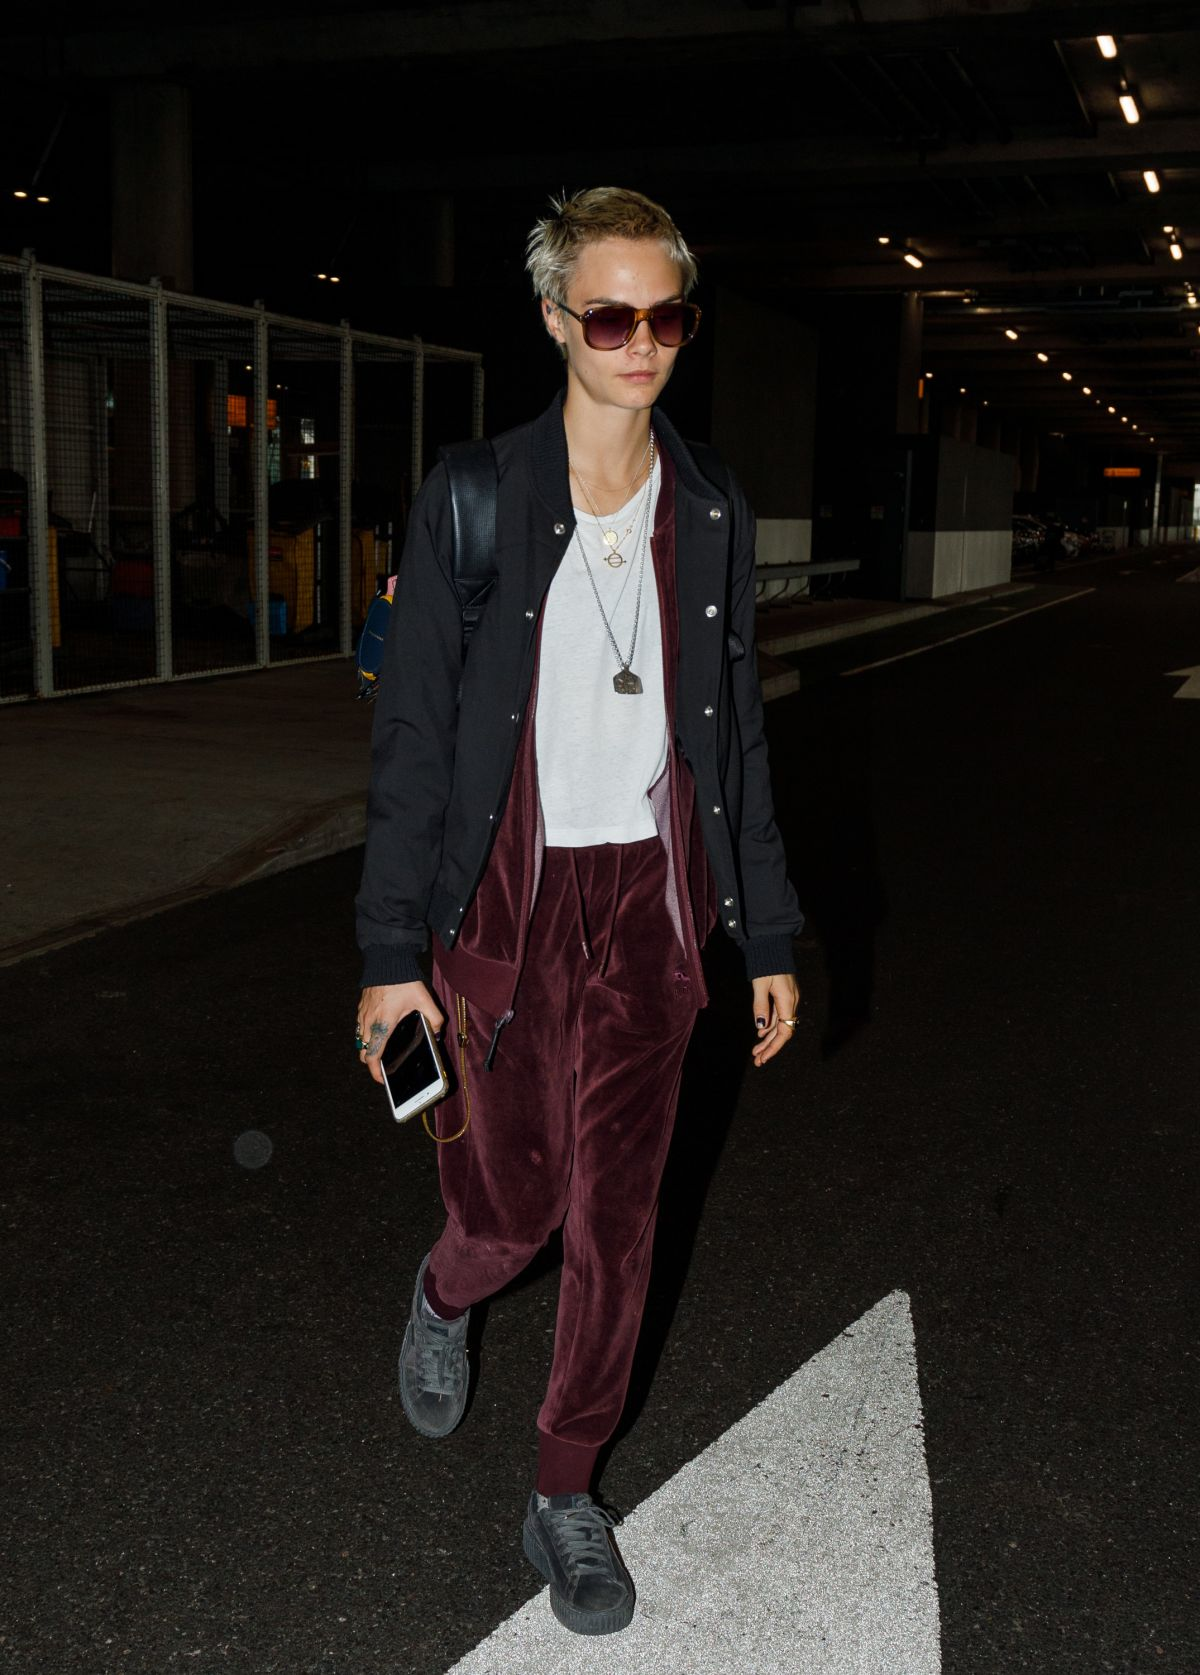 CARA DELEVINGNE at Heathrow Airport in London 08/21/2017